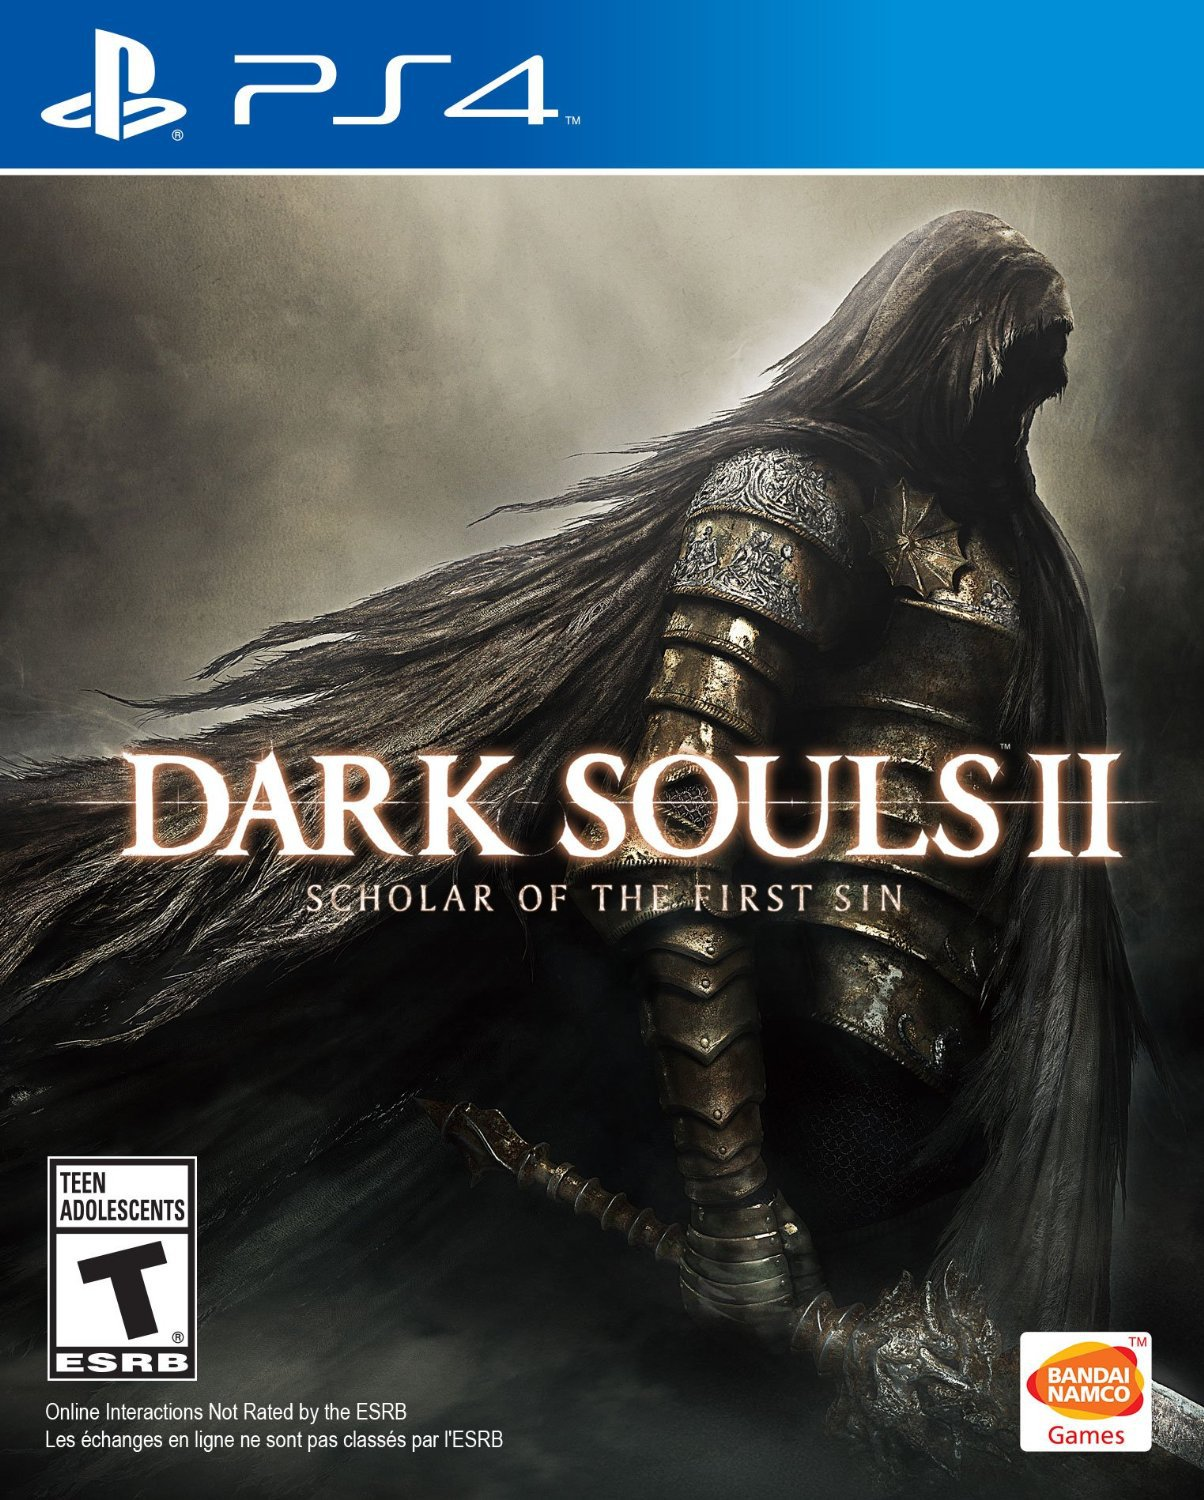 Dark Souls II: Scholar of the First Sin PS4 Physical Game Disc US